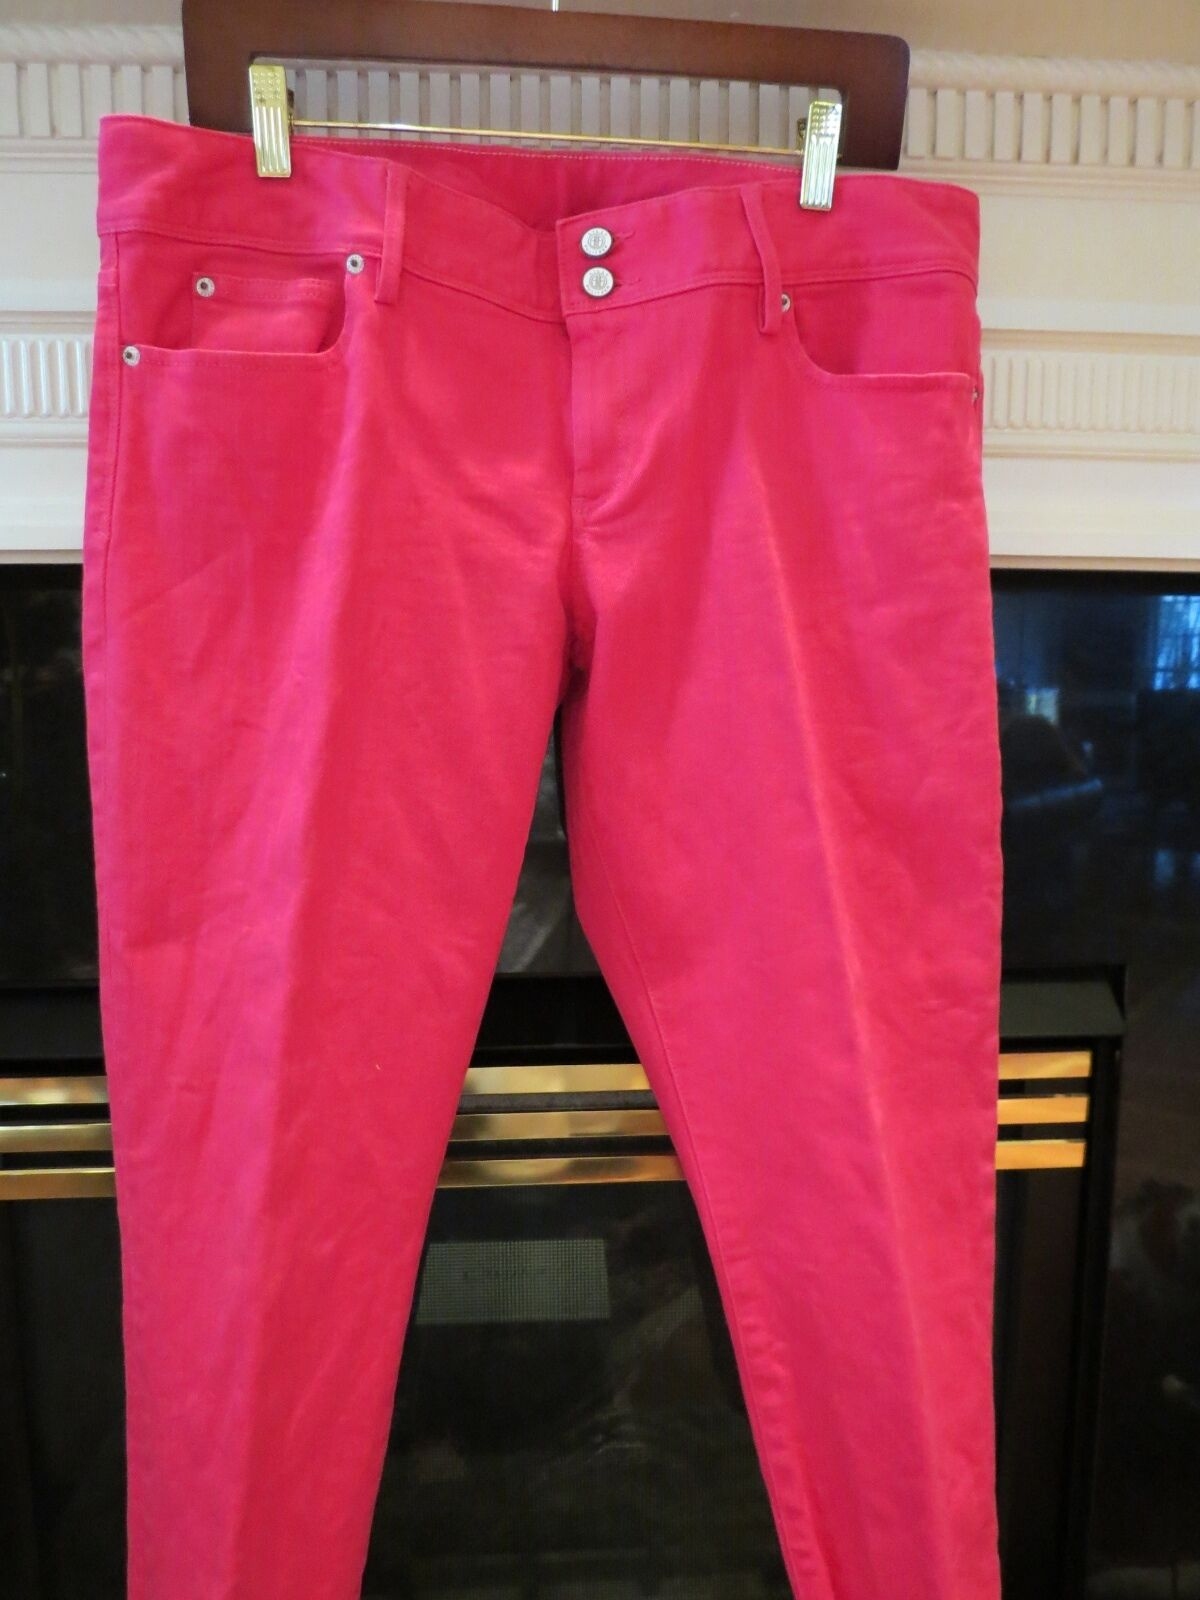 NWOT WOMENS LILLY PULITZER PINK WORTH STRAIGHT LEG JEANS PANTS SIZE 14